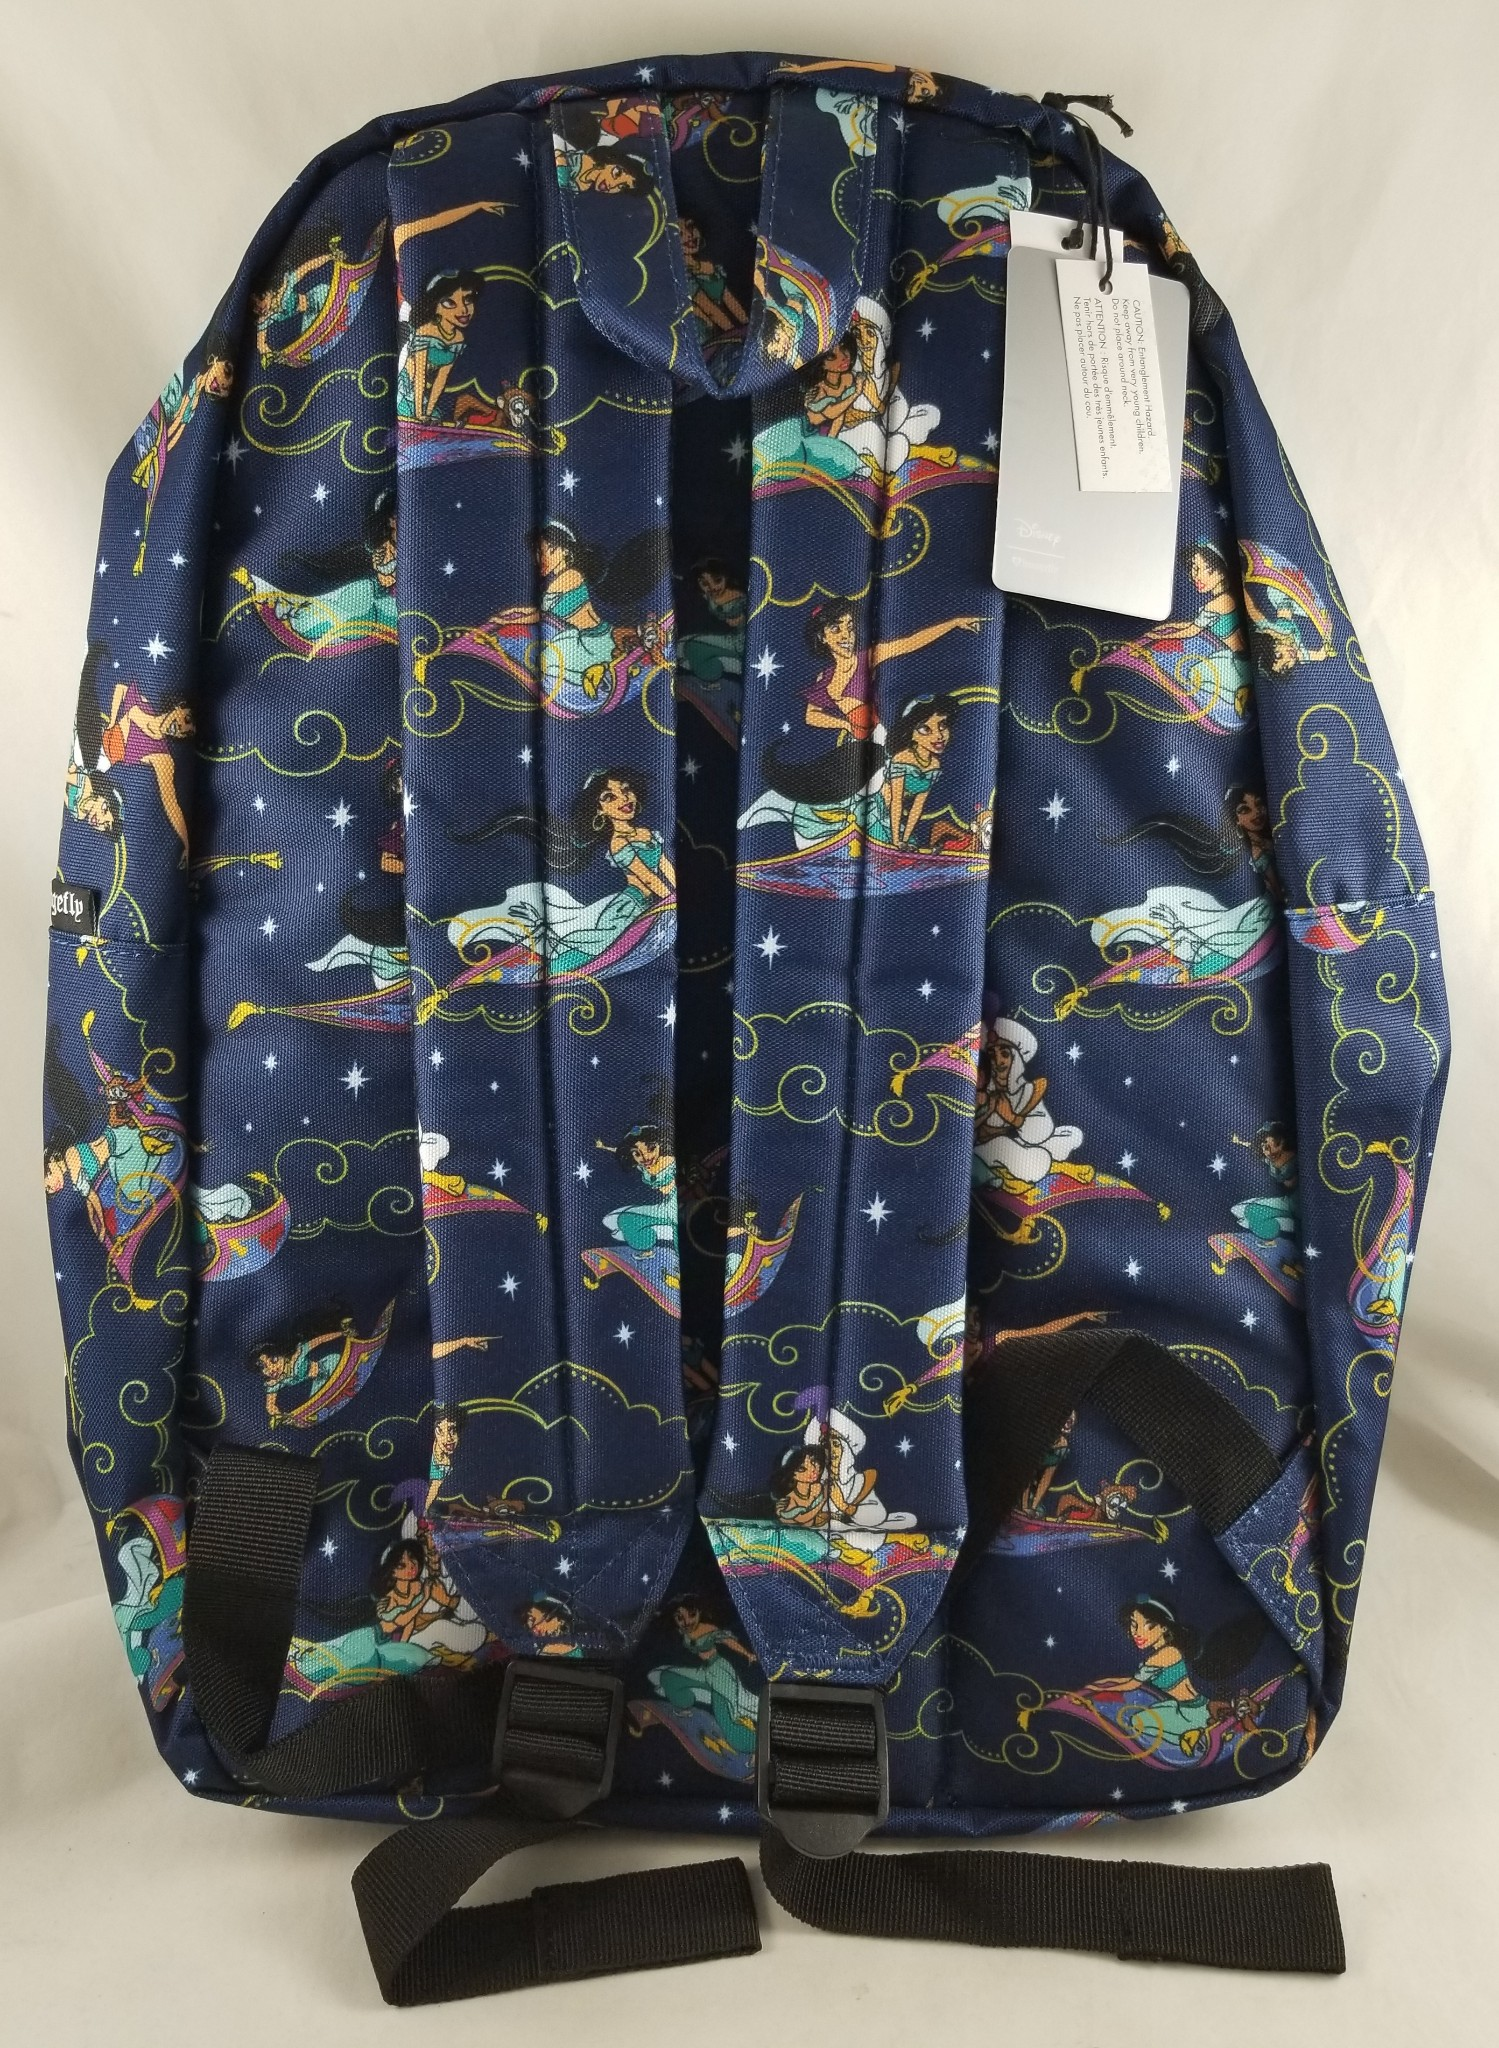 798b149808d Loungefly Disney Parks Aladdin Carpet Ride Print Backpack Book   Cosmetic  Bag. click thumbnails above to enlarge